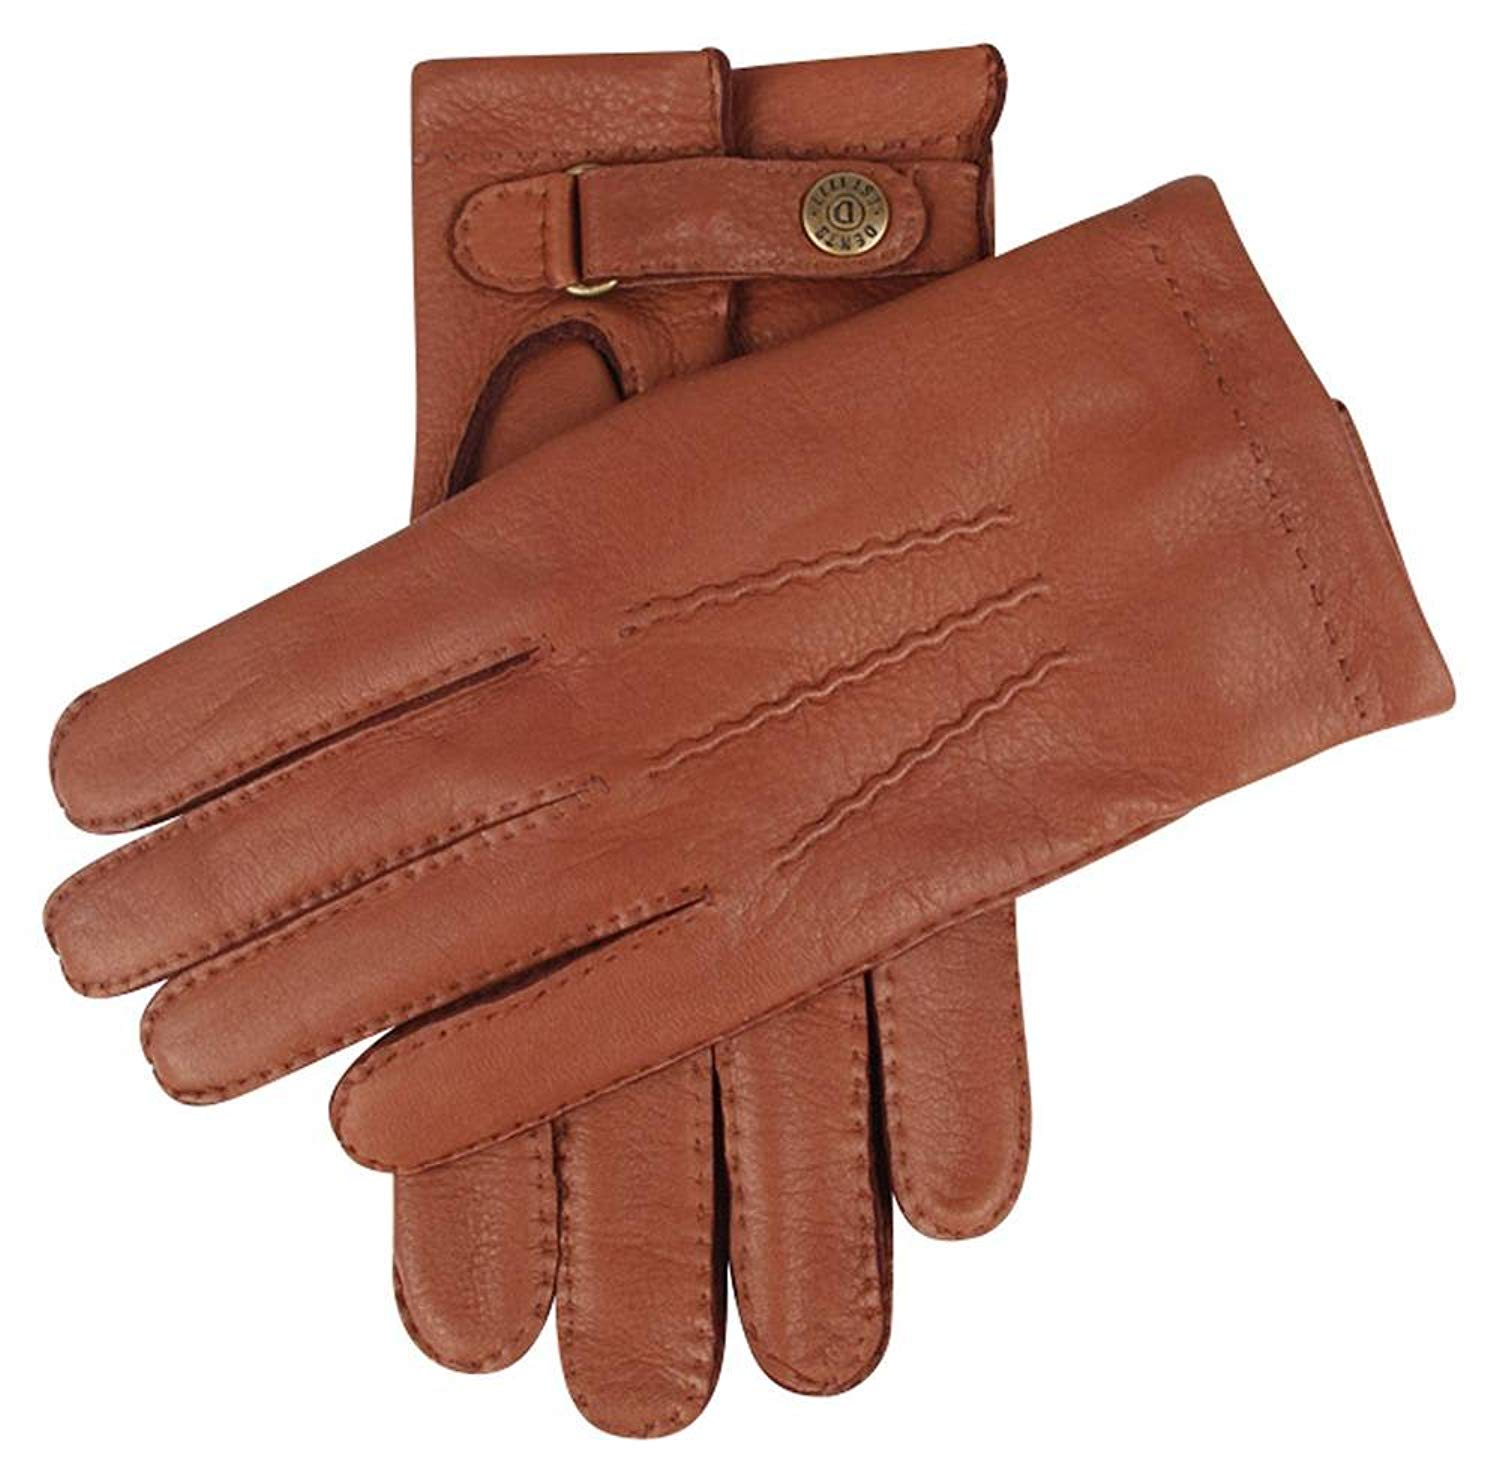 992bb54c44ad4 Get Quotations · Dents Mens Canterbury Cashmere Lined Deerskin Leather  Gloves - Havana Brown